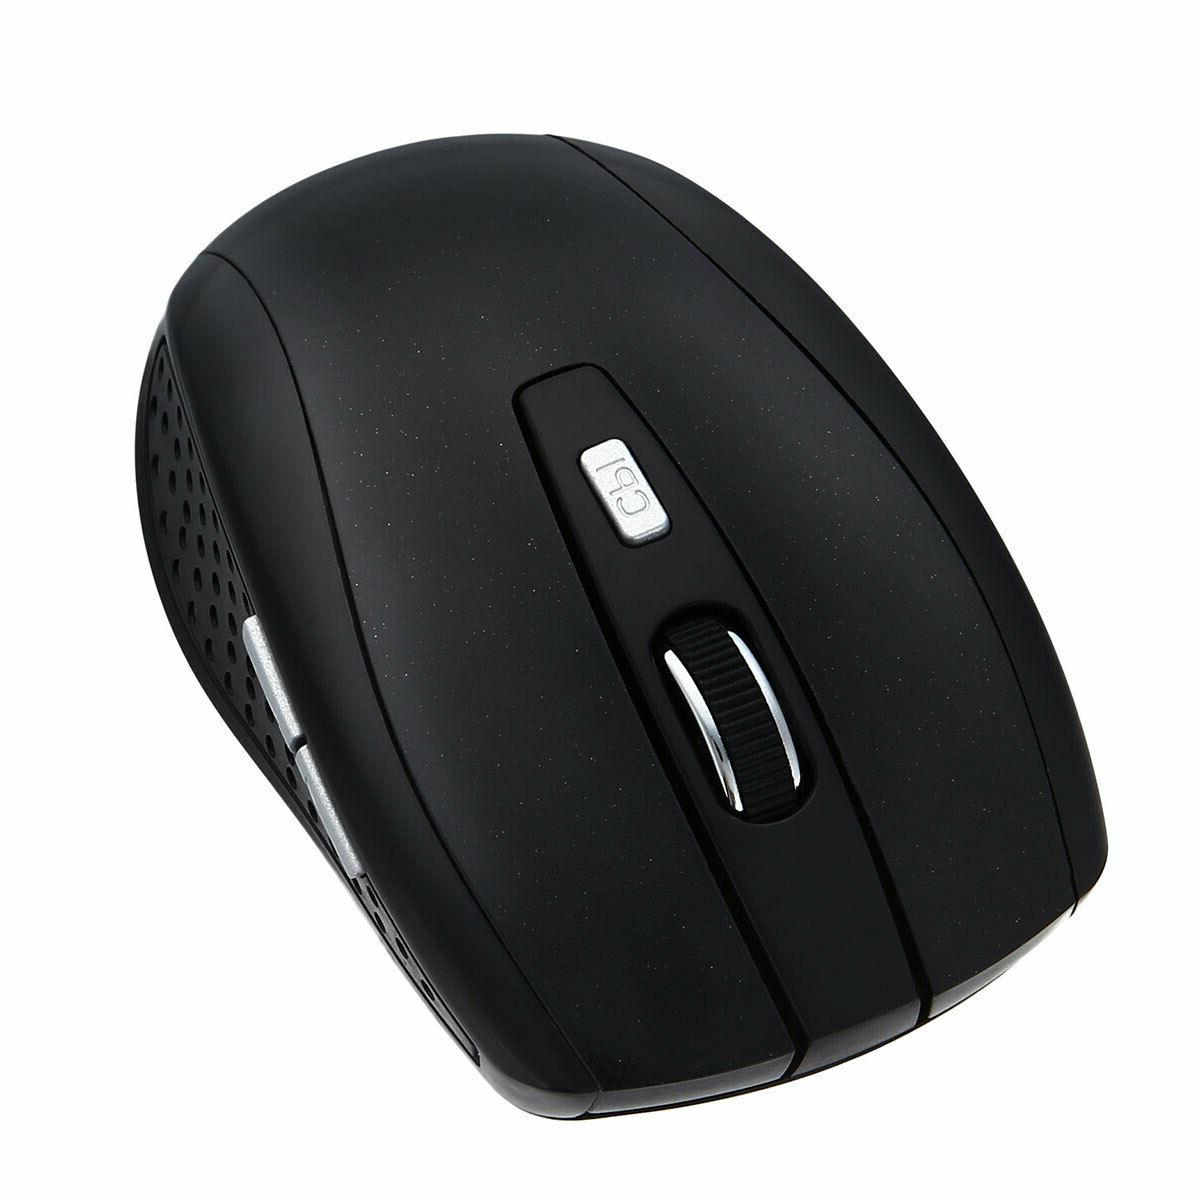 2.4GHz Mouse Mice + Receiver PC